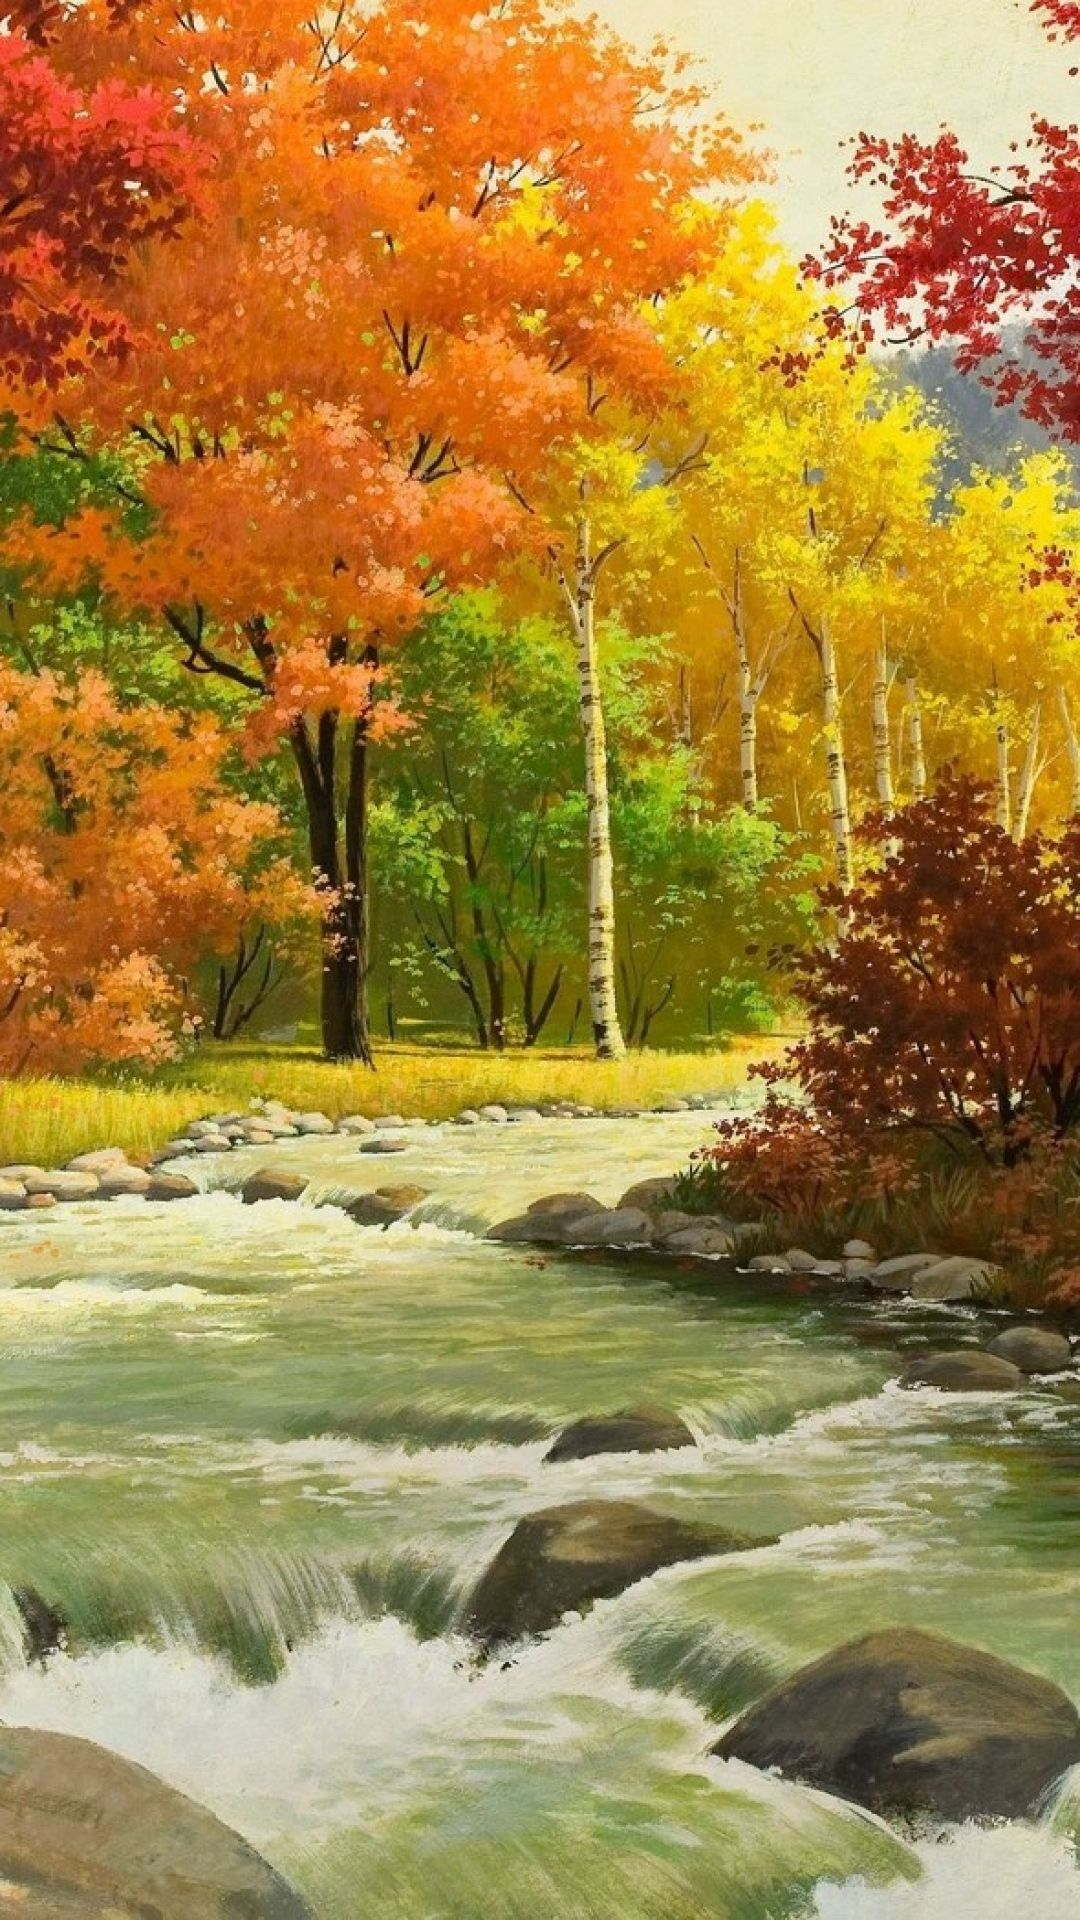 Wallpaper 1080x1920 Autumn Landscape Painting